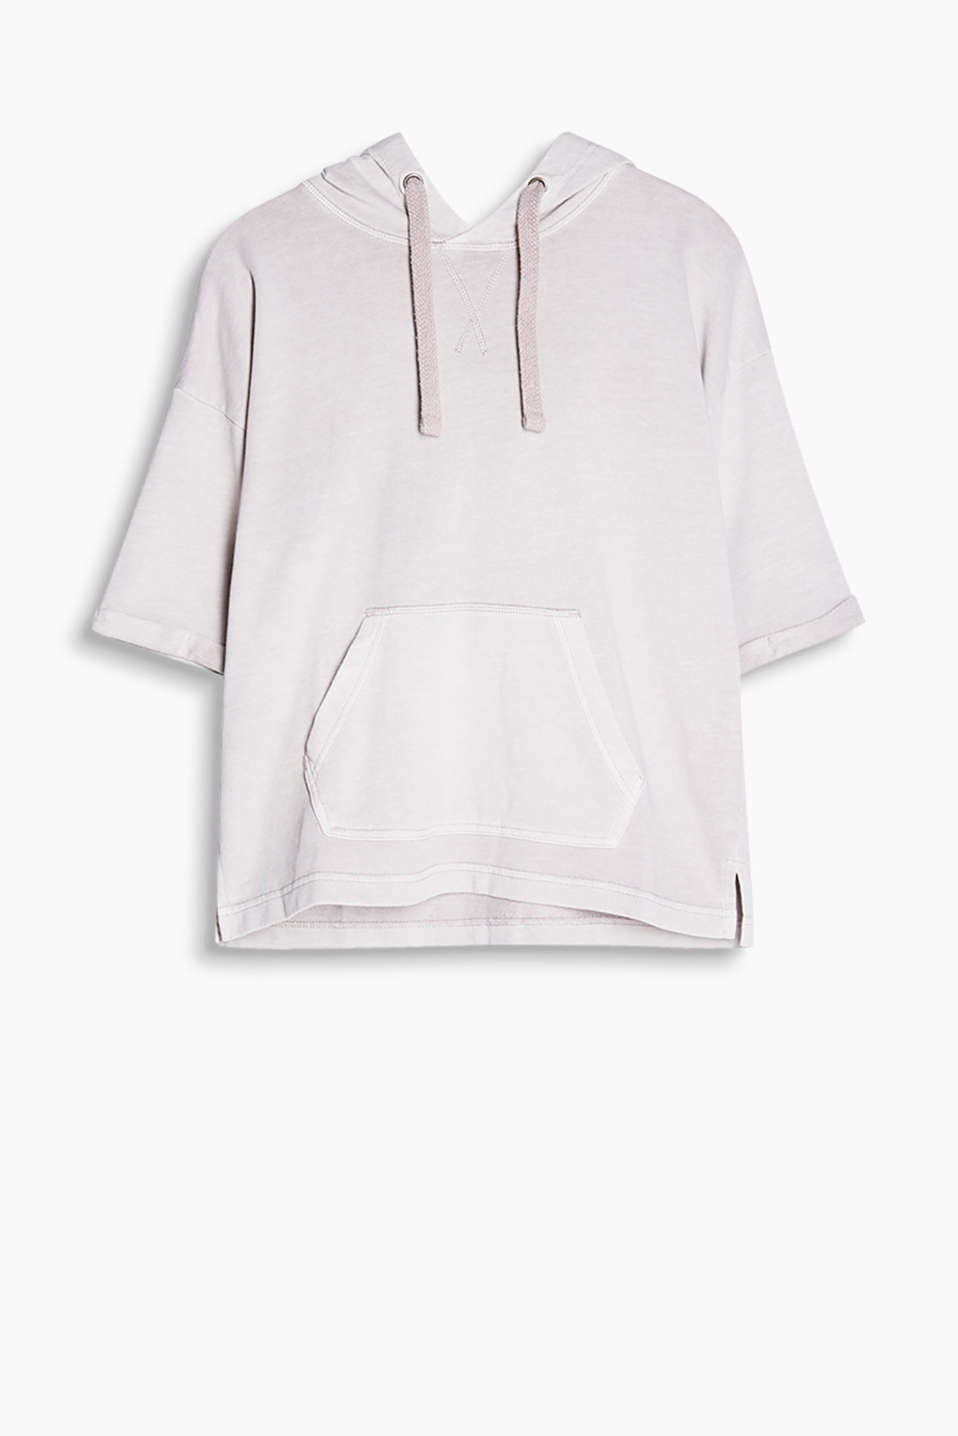 Garment-washed, hooded sweatshirt in 100% cotton with a kangaroo pocket